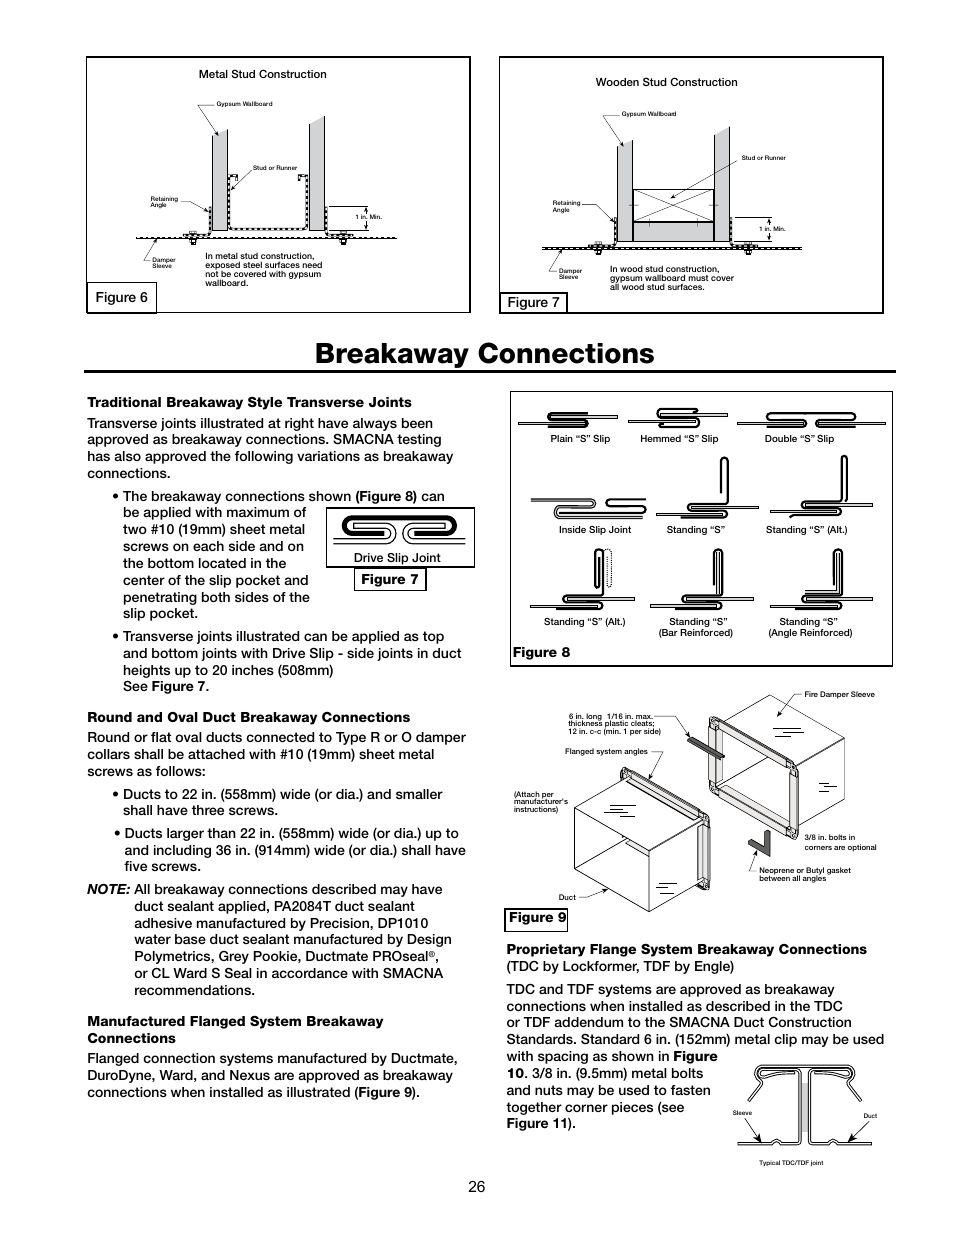 Breakaway Connections Figure 7 8 Greenheck Multi Blade Fire Combination Smoke Dampers Installation Booklet 826249 User Manual Page 26